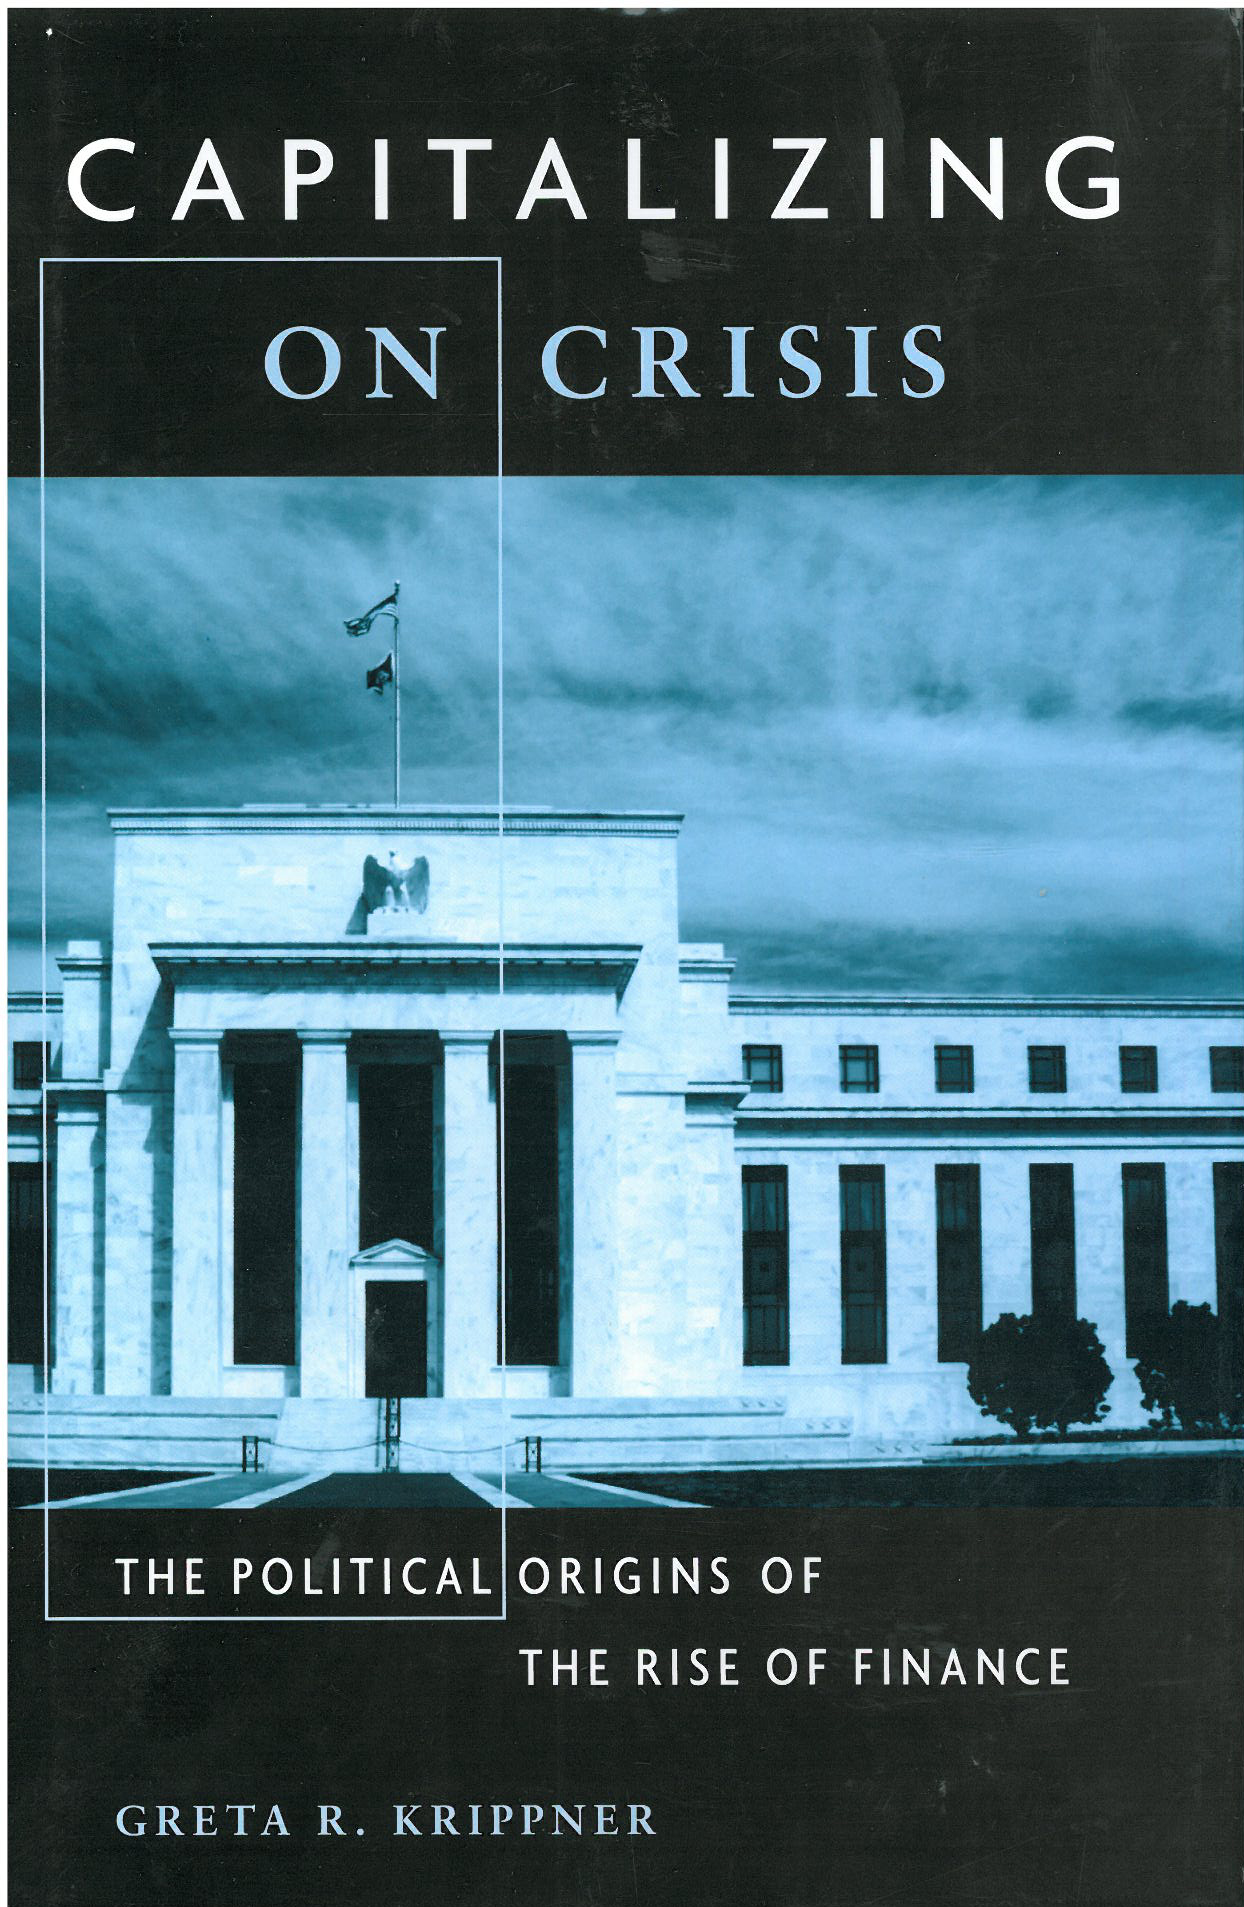 krippner book cover, capitalizing on crisis